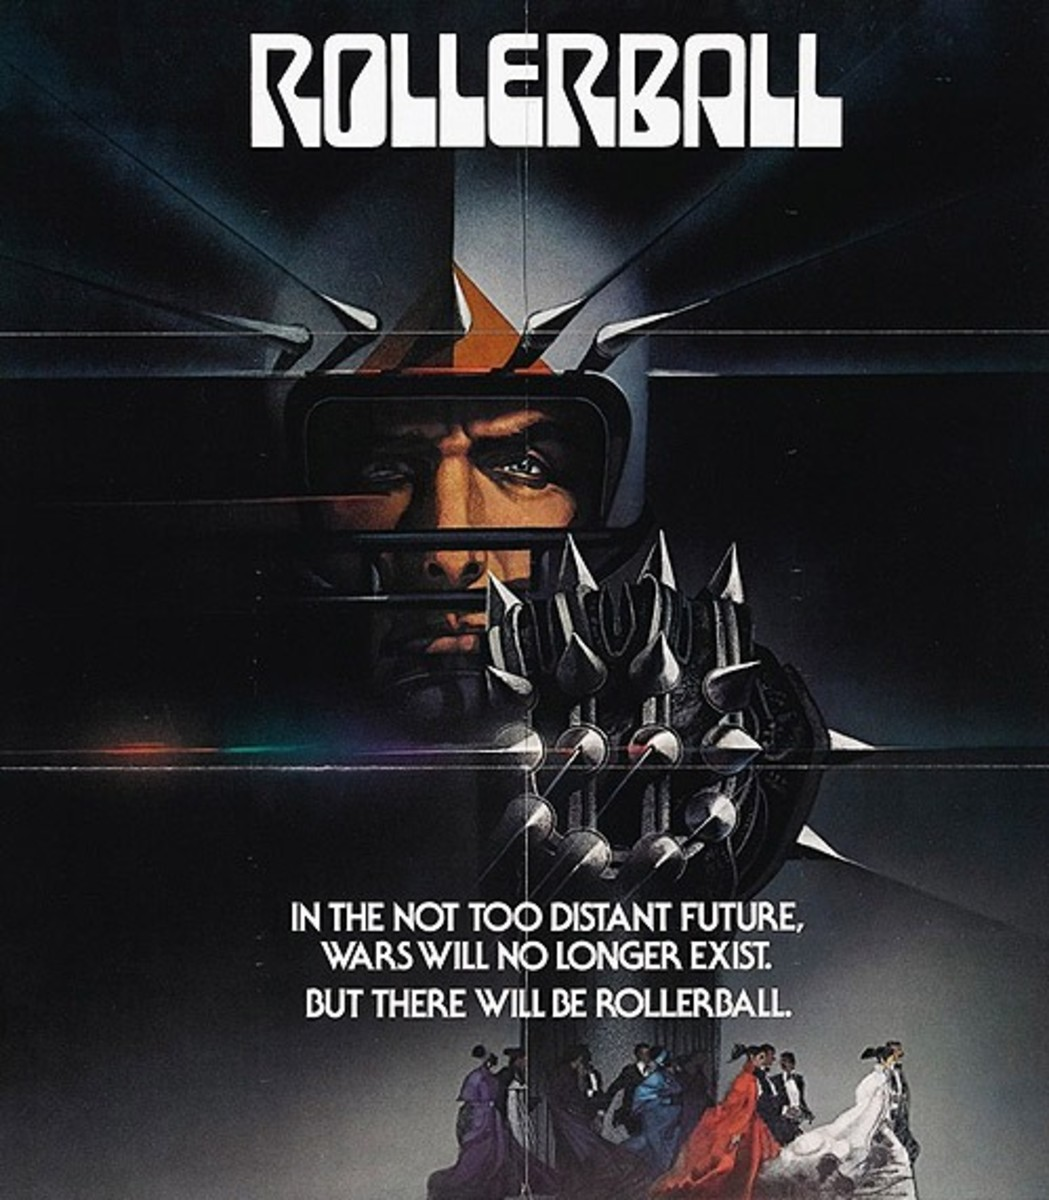 Rollerball (1975) art by Bob Peak